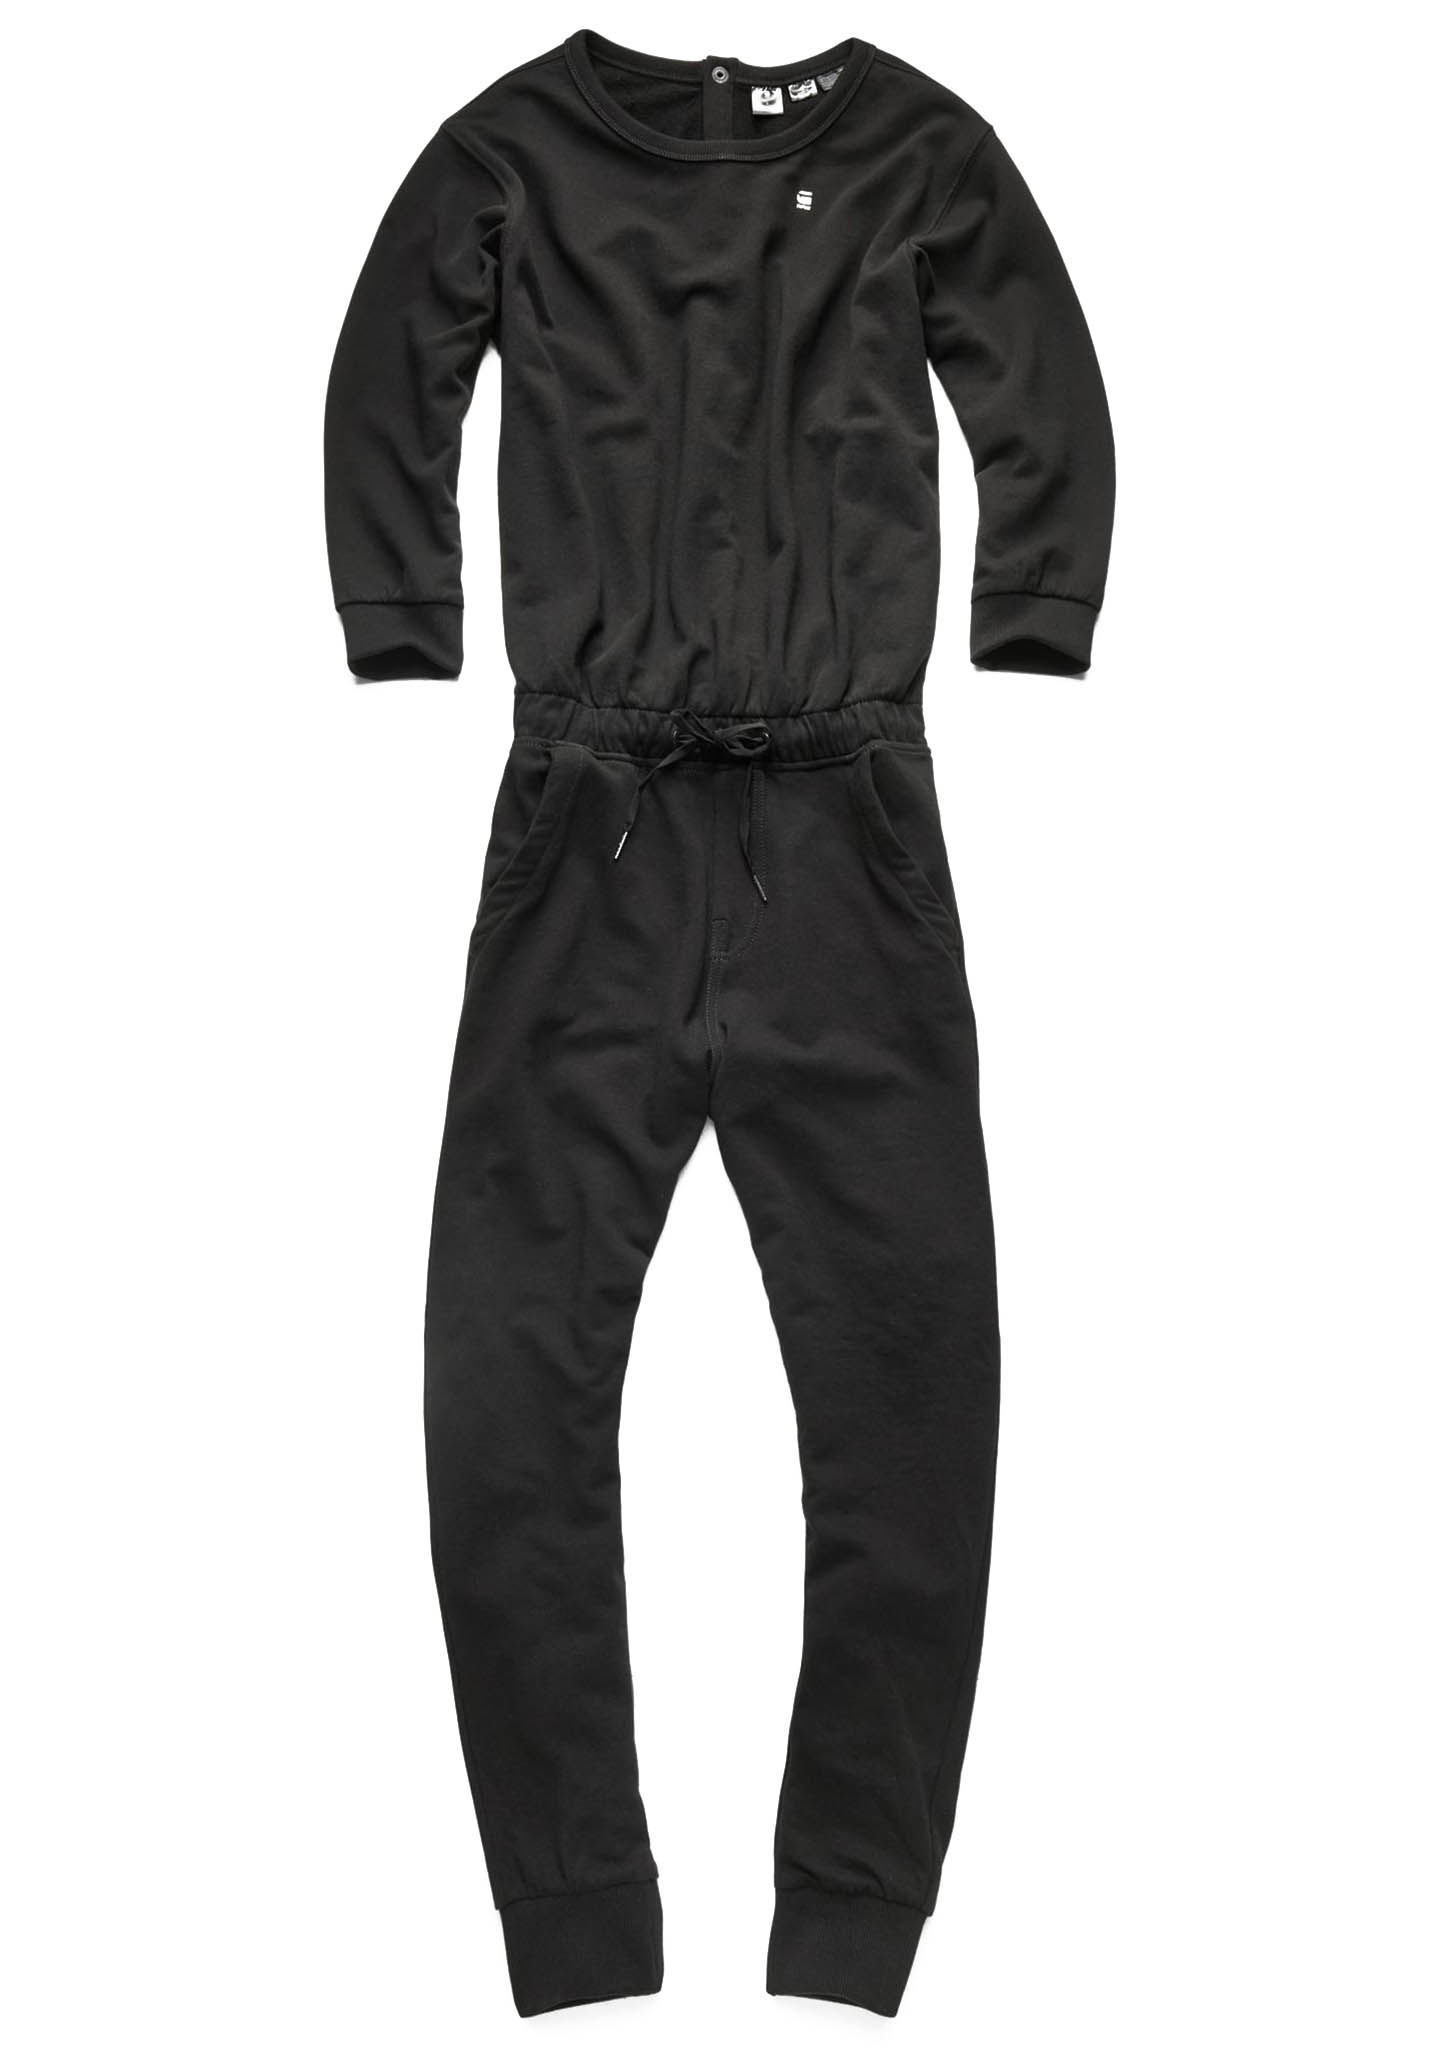 8a87313b76bd G-STAR Dundja Boyfriend 3 4-Sleeve - Jumpsuit voor Dames - Zwart - Planet  Sports